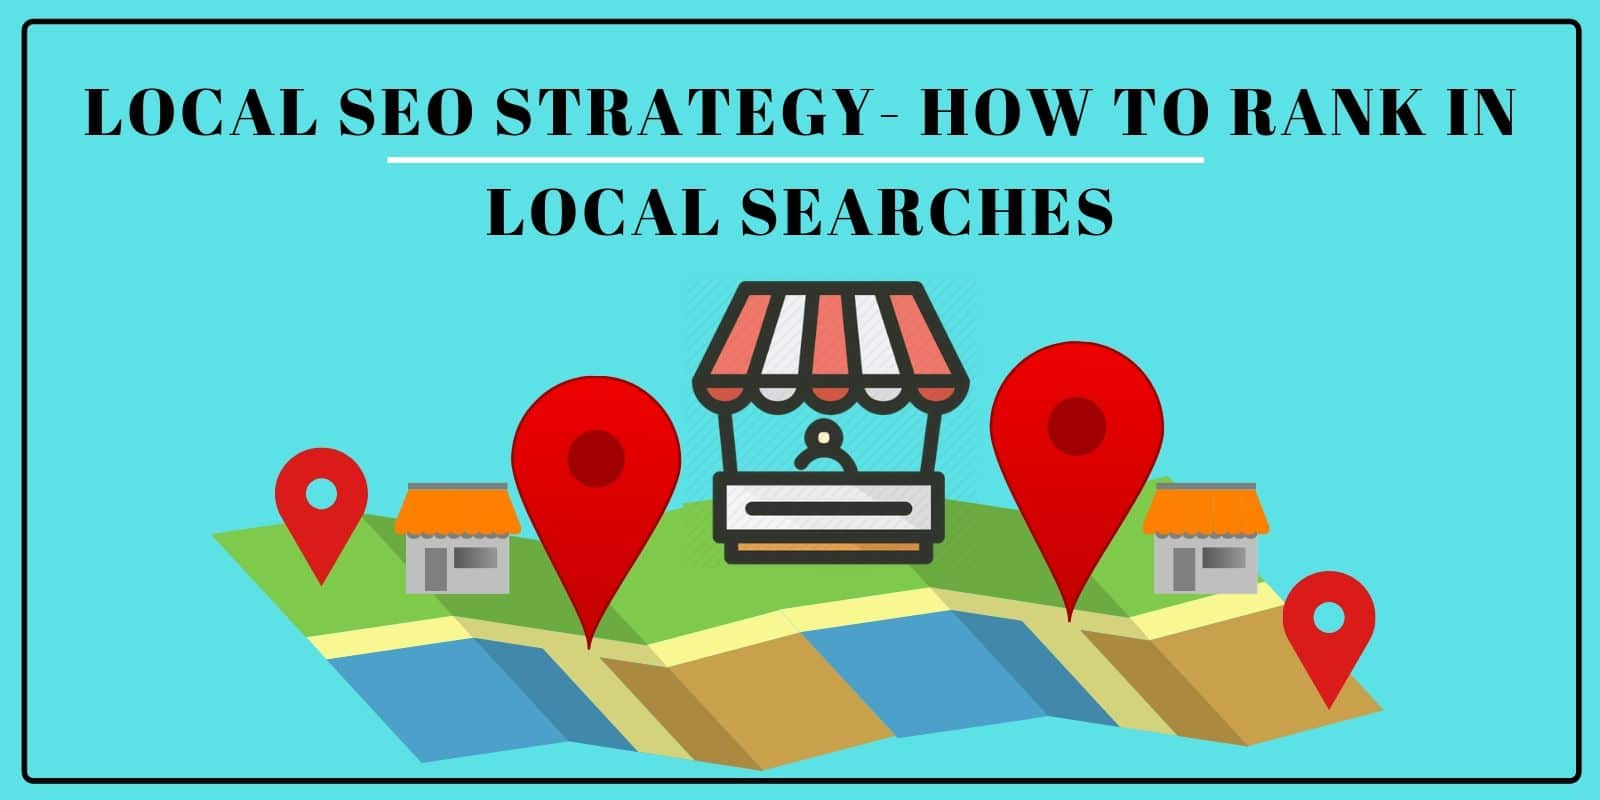 Local SEO Strategy-How To Rank in Local Searches